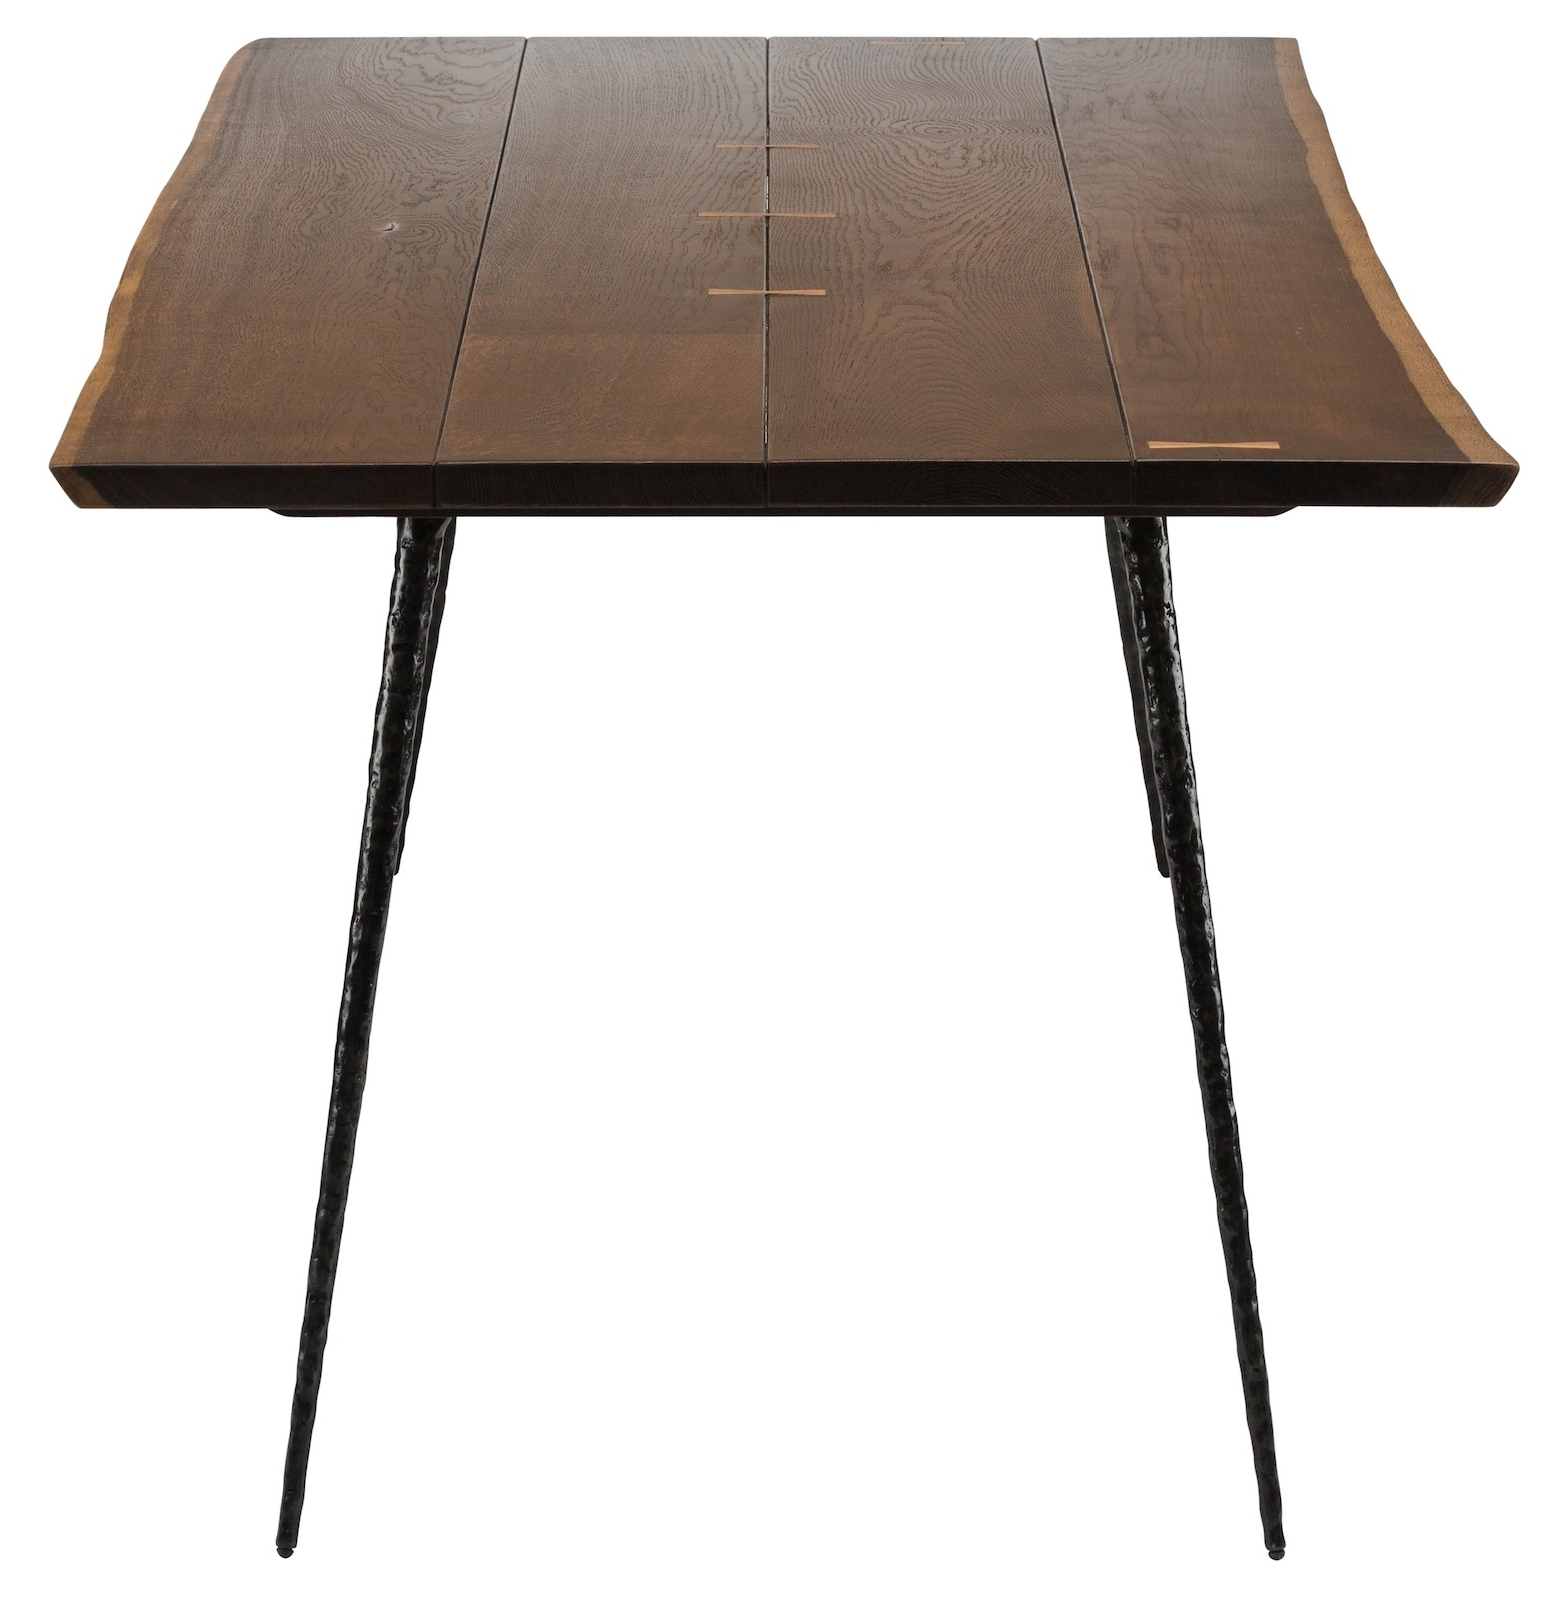 Nexa 78 Inch Dining Table In Seared Oaknuevo – Hgsr651 Inside Latest Portland 78 Inch Dining Tables (View 11 of 25)